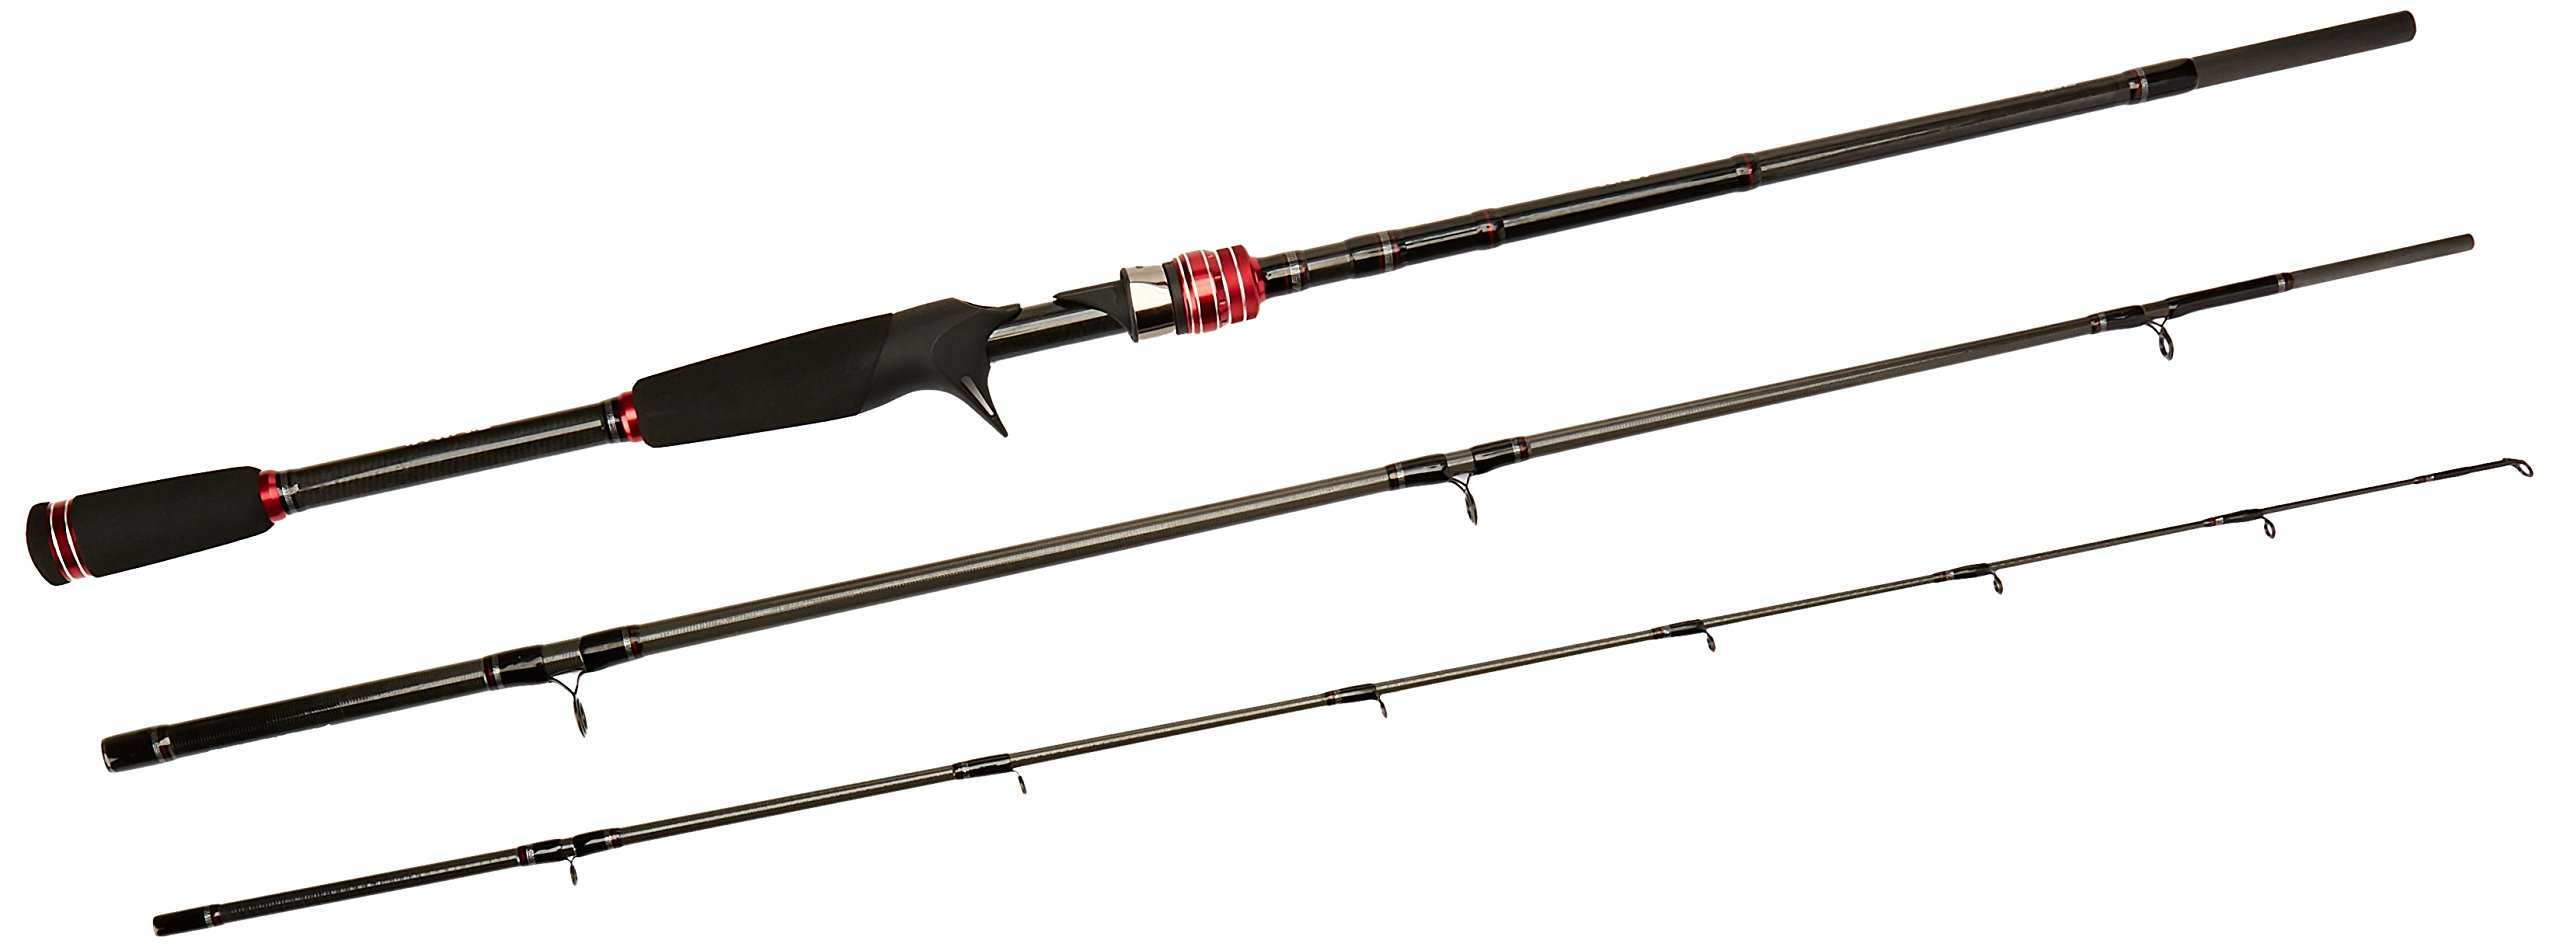 Daiwa Ardito-TR Travel Trigger Rod (3 Piece), Medium/7'